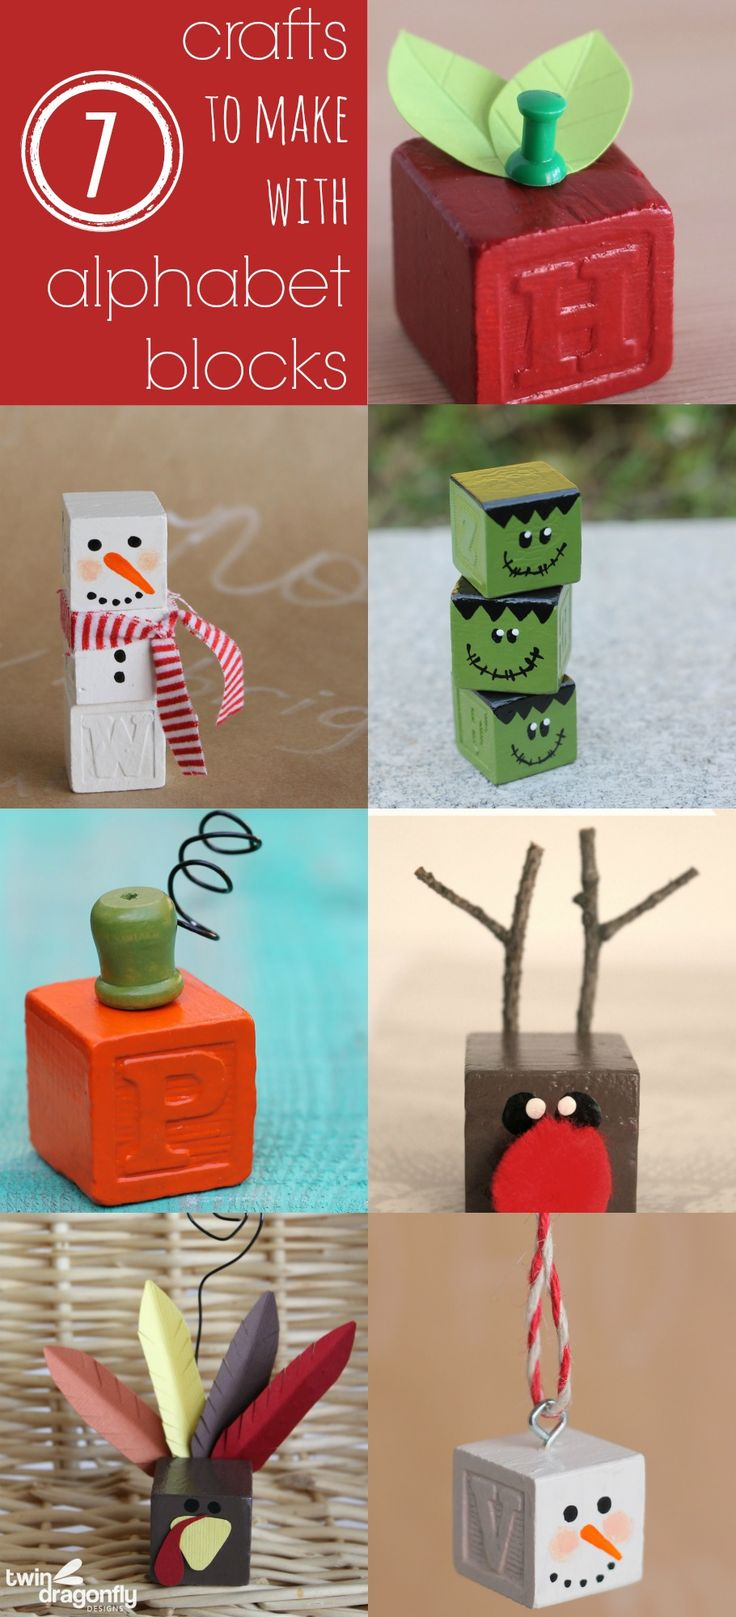 Seven Crafts to make with Alphabet Blocks - adorable!